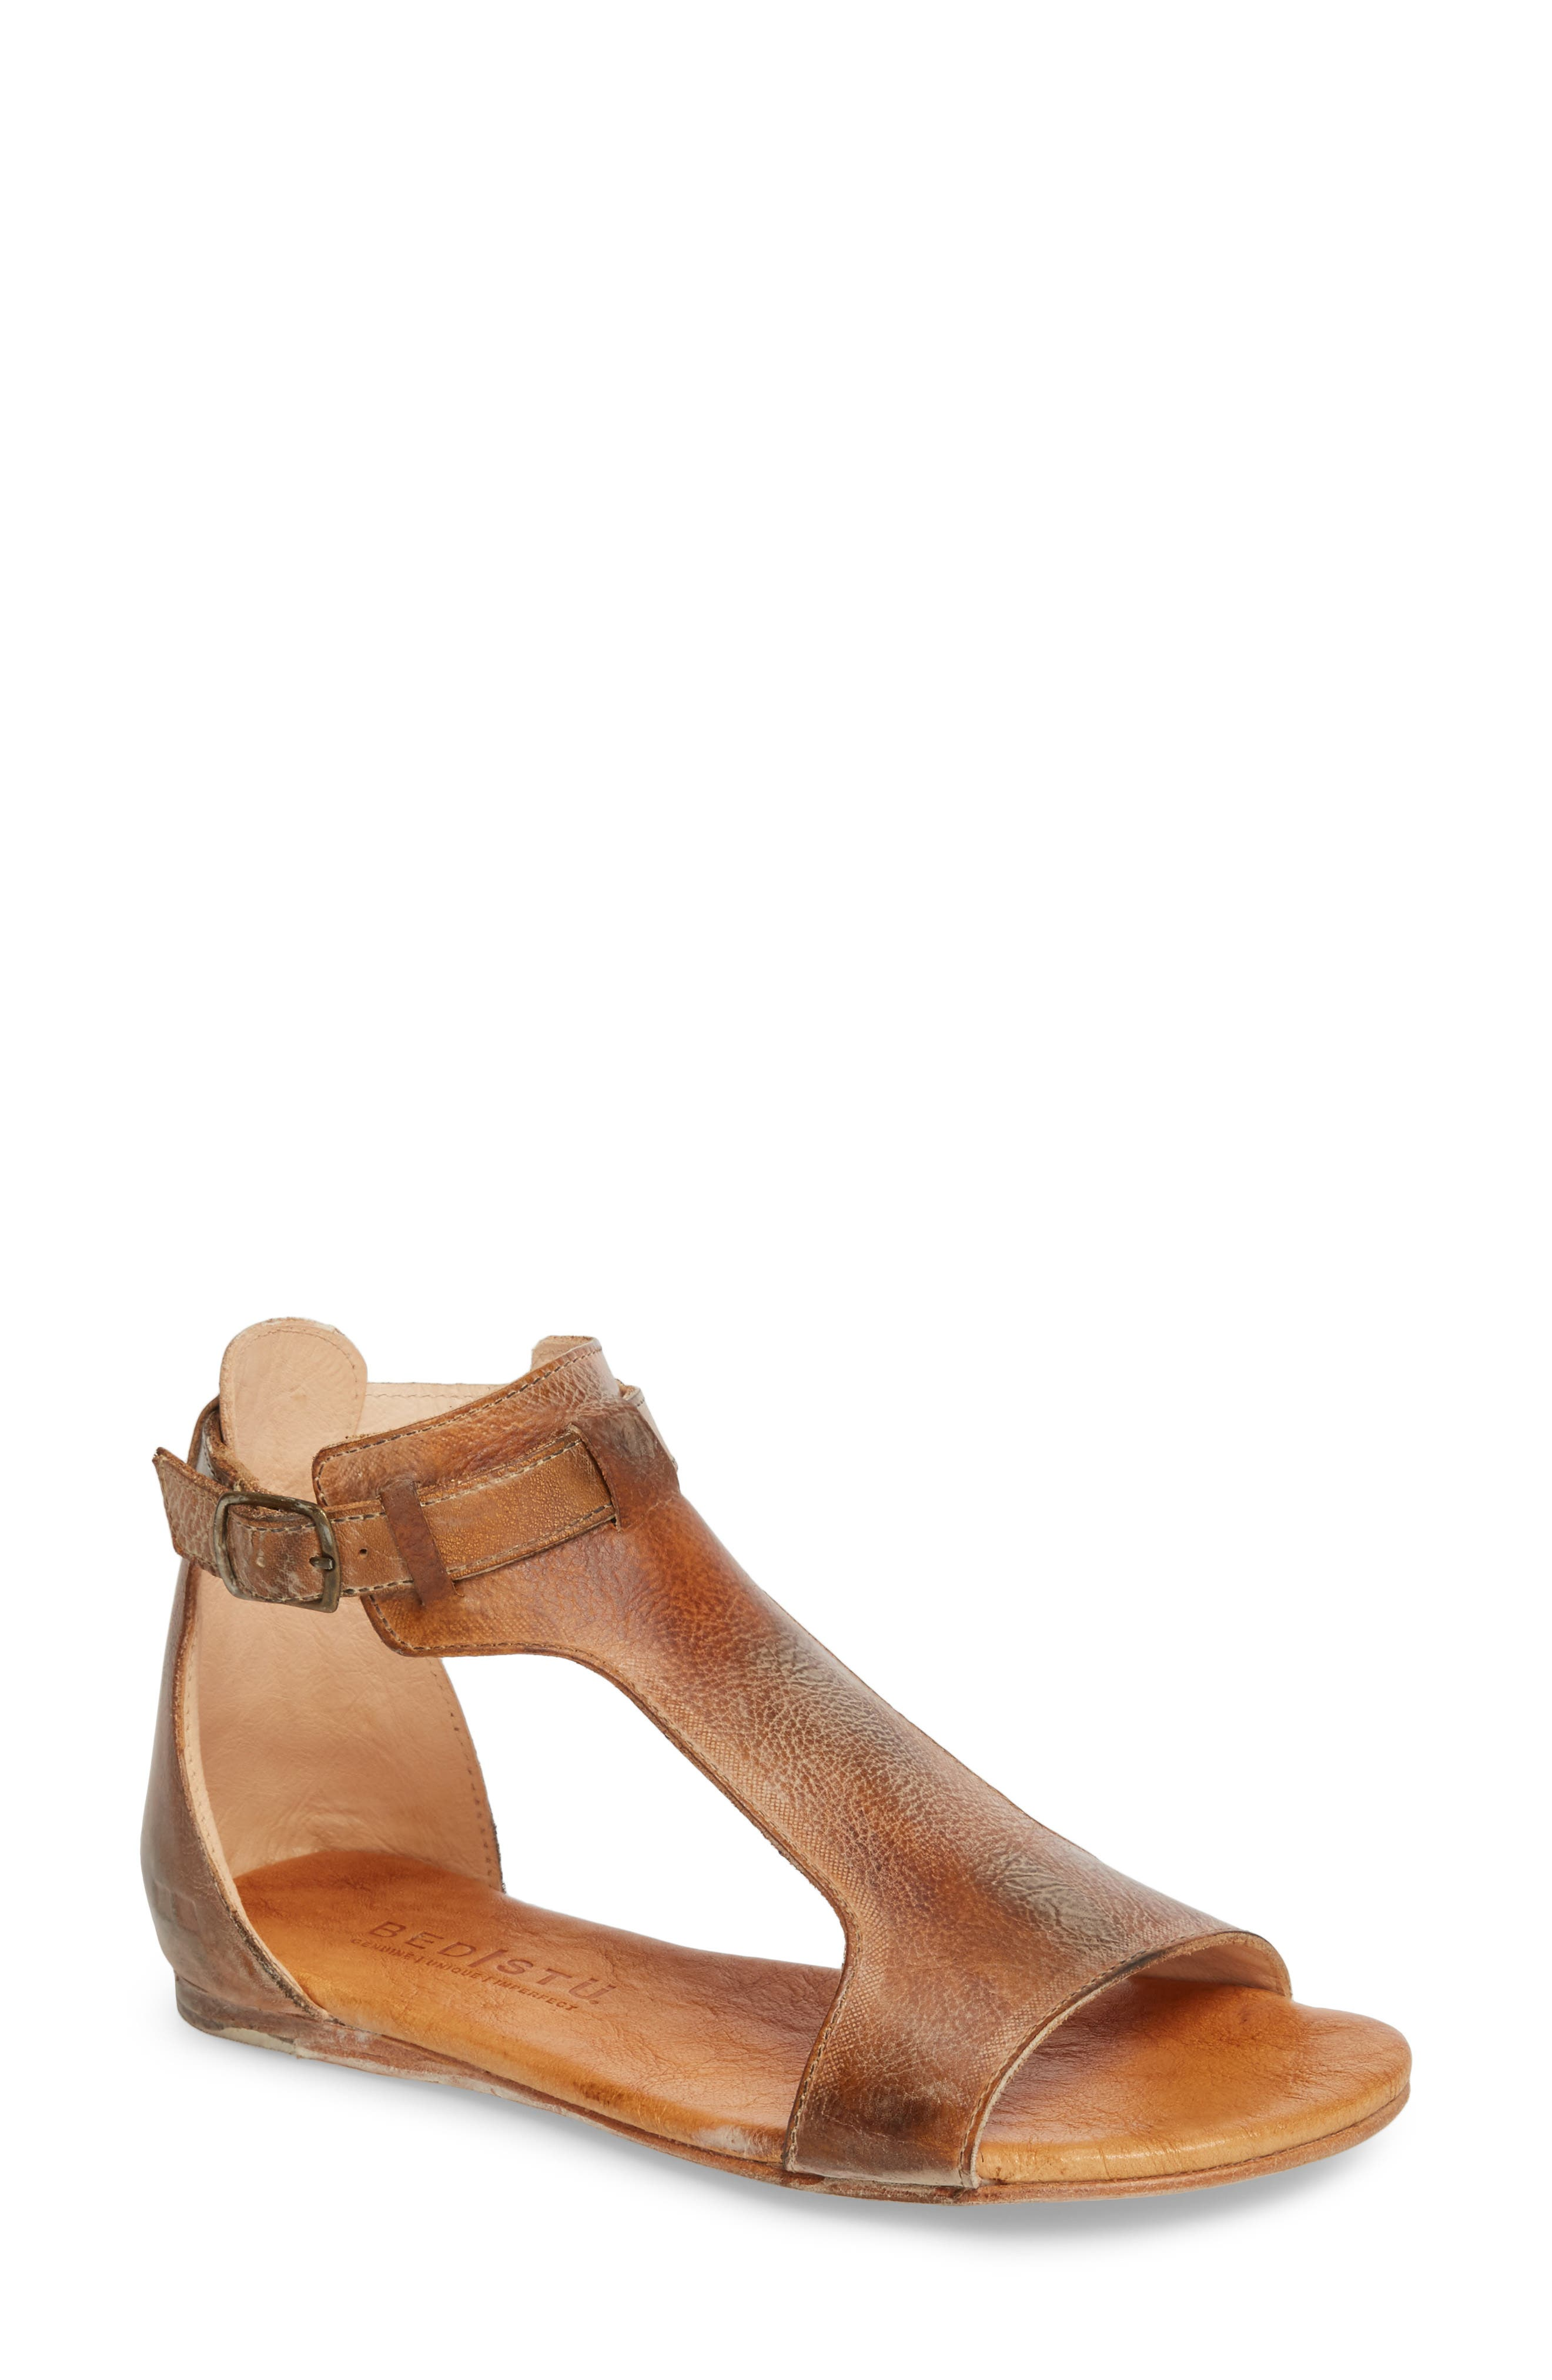 Sable Sandal,                         Main,                         color, Tan/ White Leather